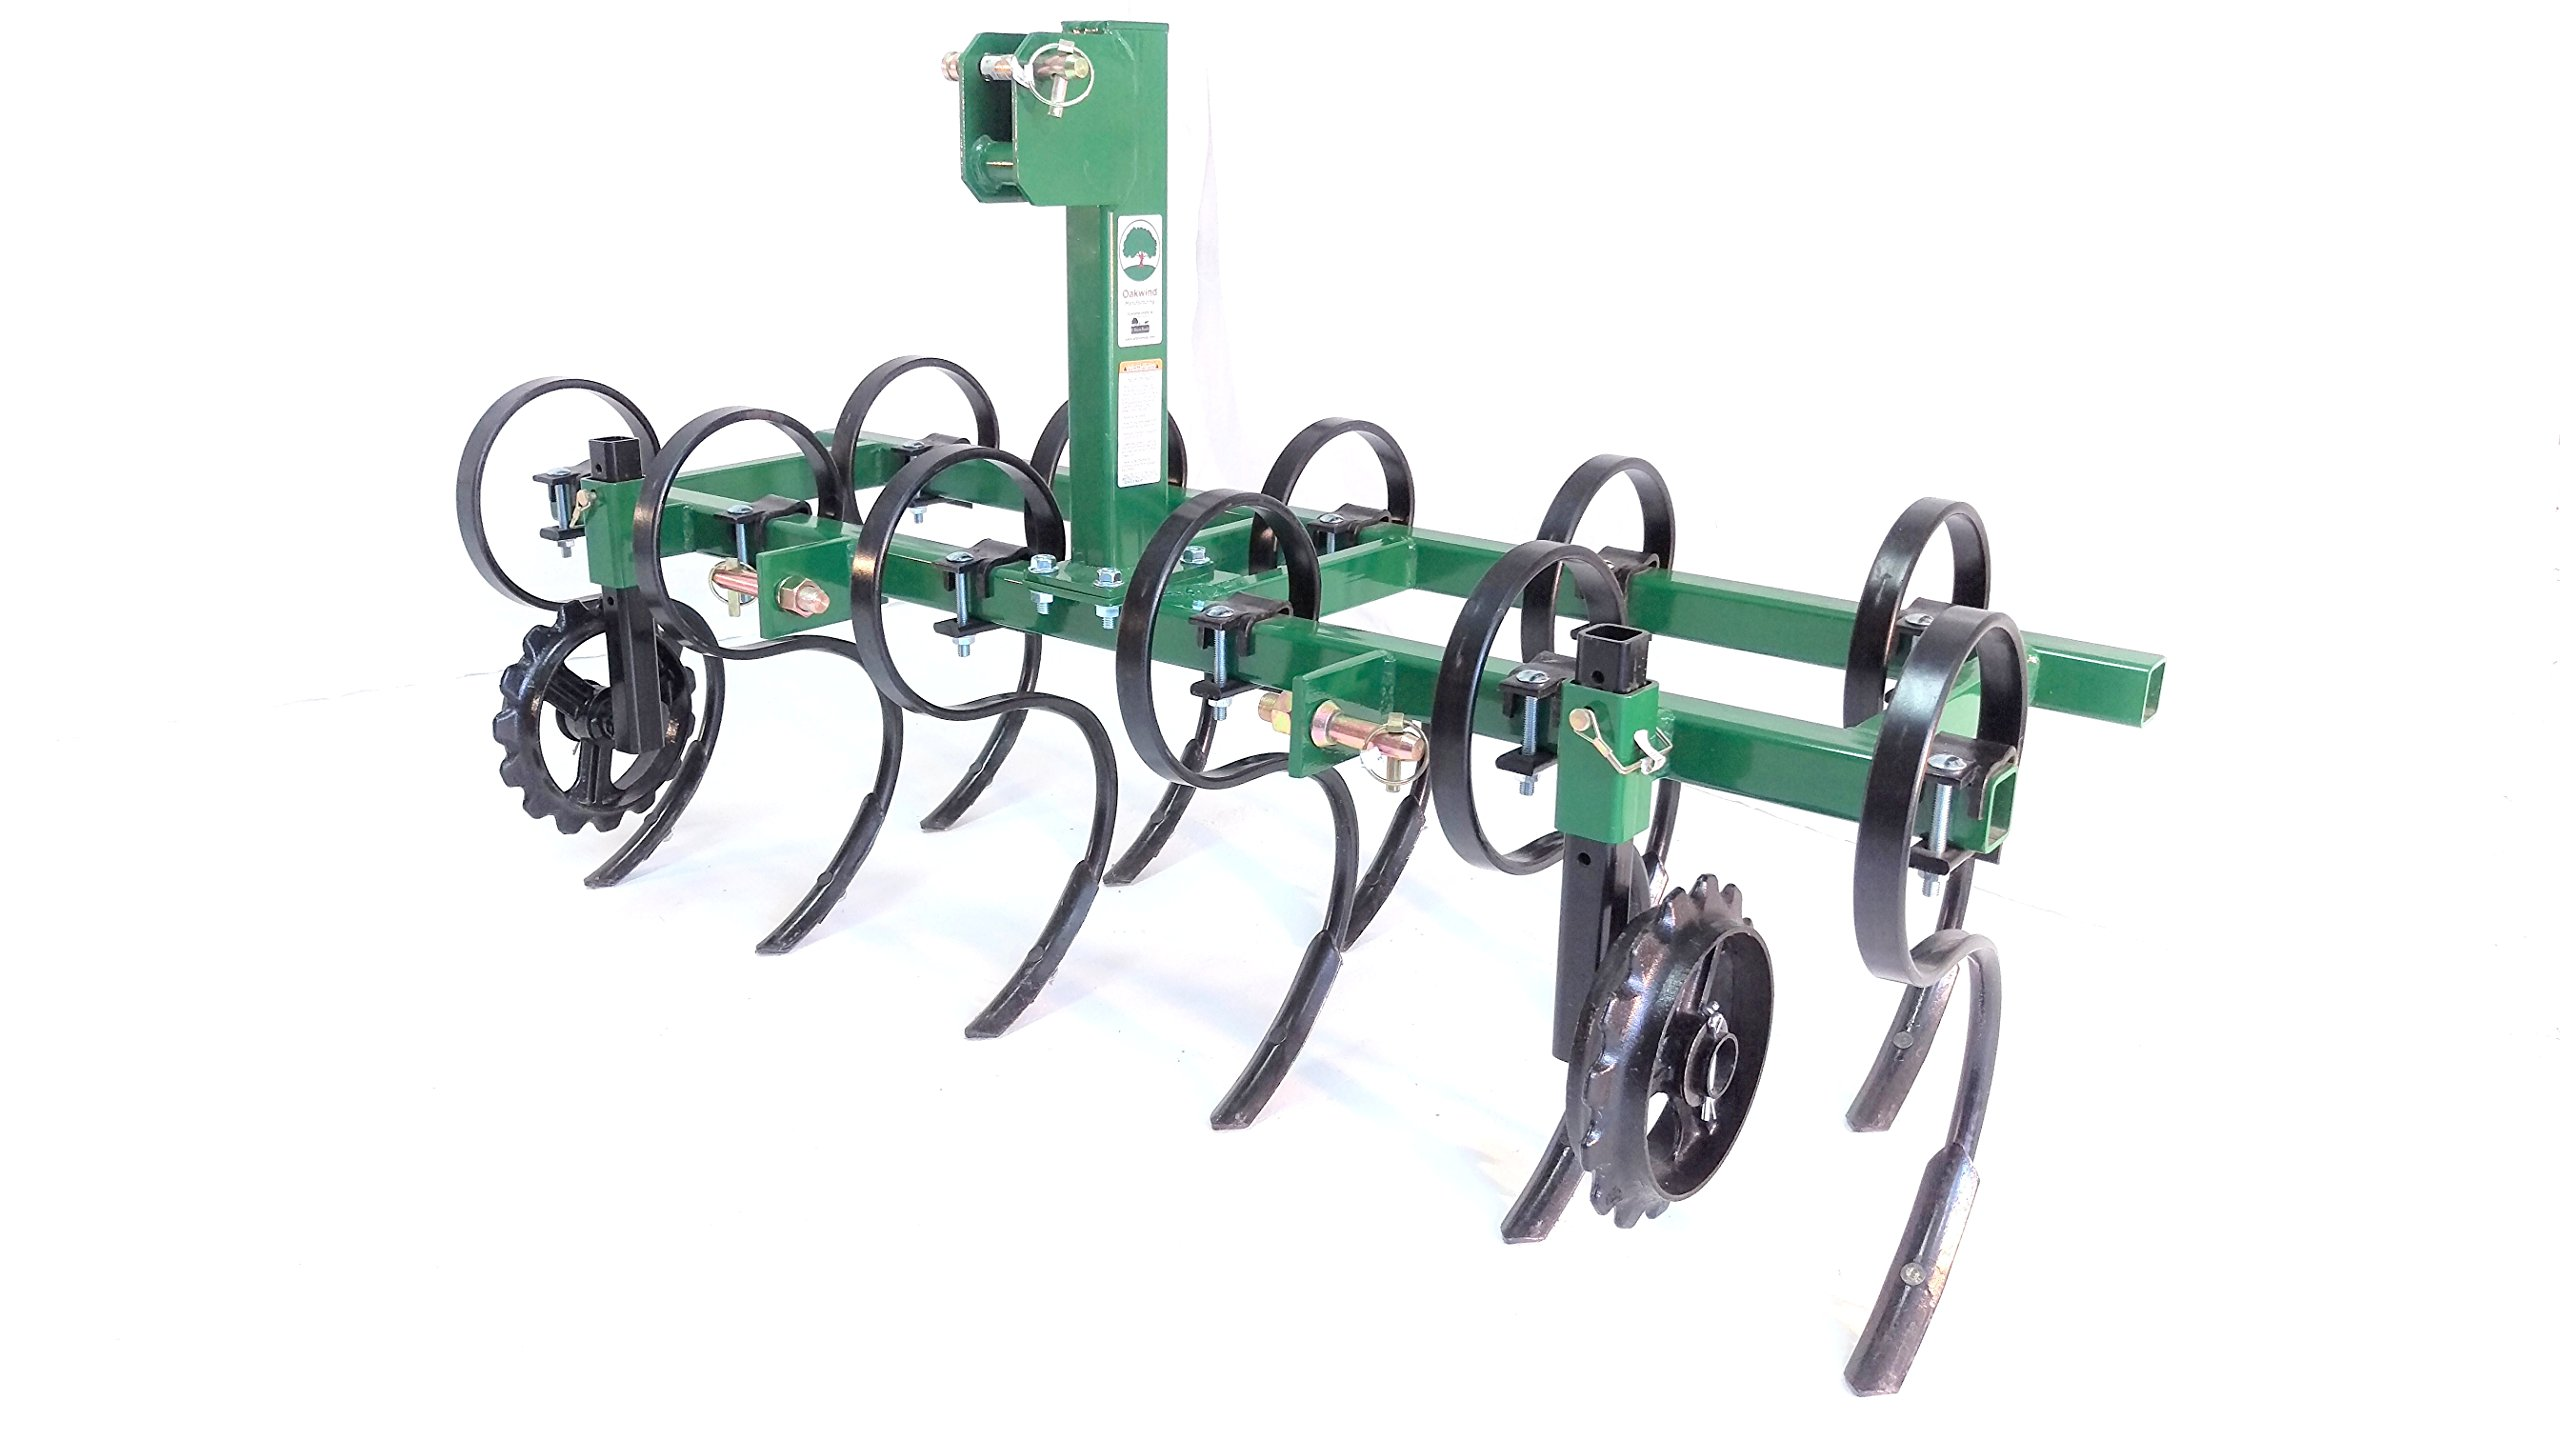 Oakwind Mfg. LLC - Model STC-5 5-Ft. S-Tine Cultivator by Oakwind Mfg. LLC